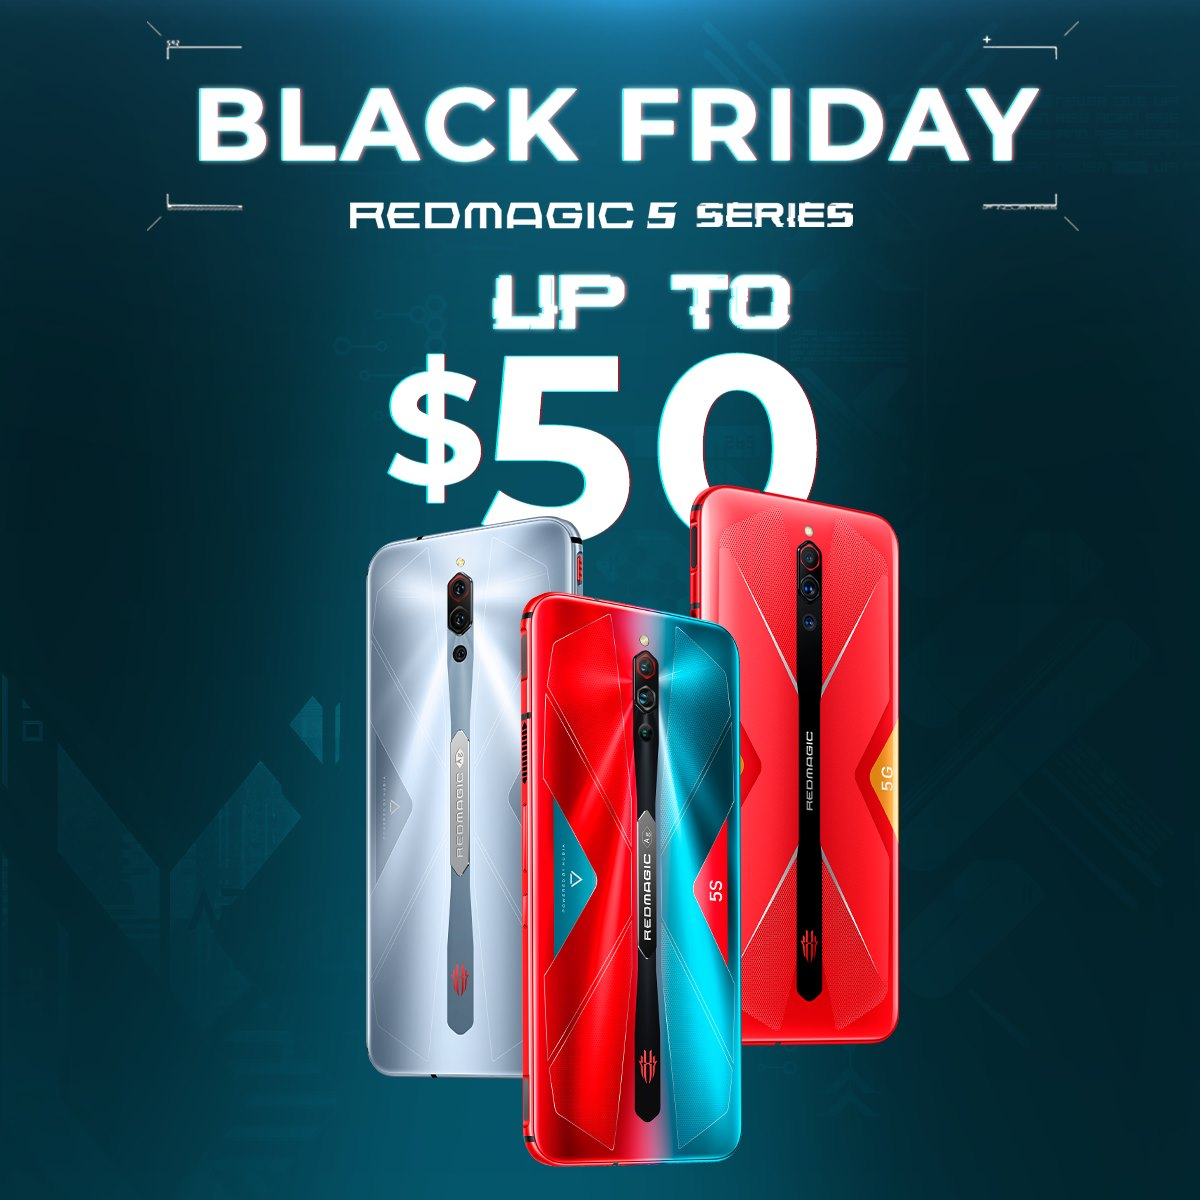 Black Friday has come early this year for RedMagic!